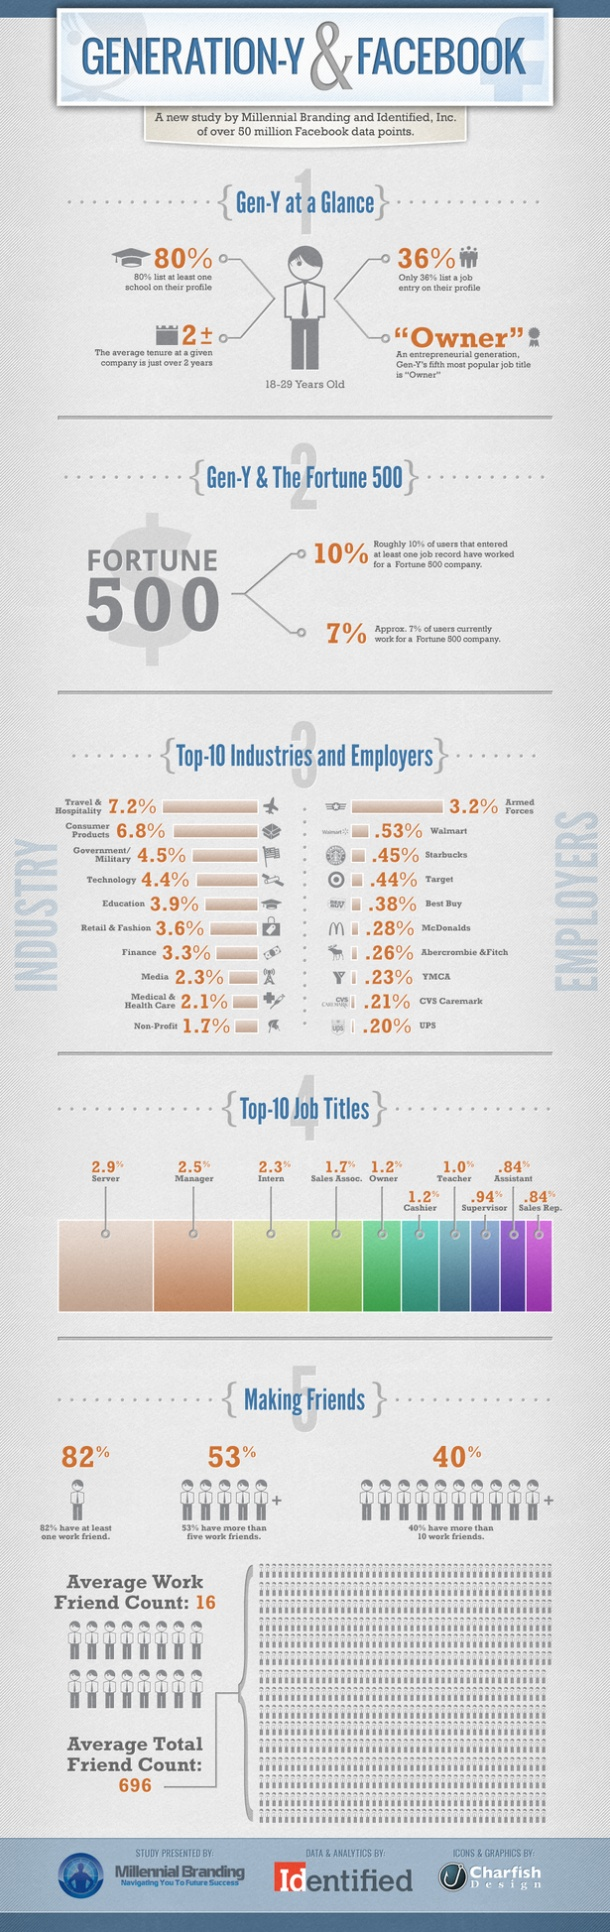 34 best Demographics images on Pinterest | Financial planning ...